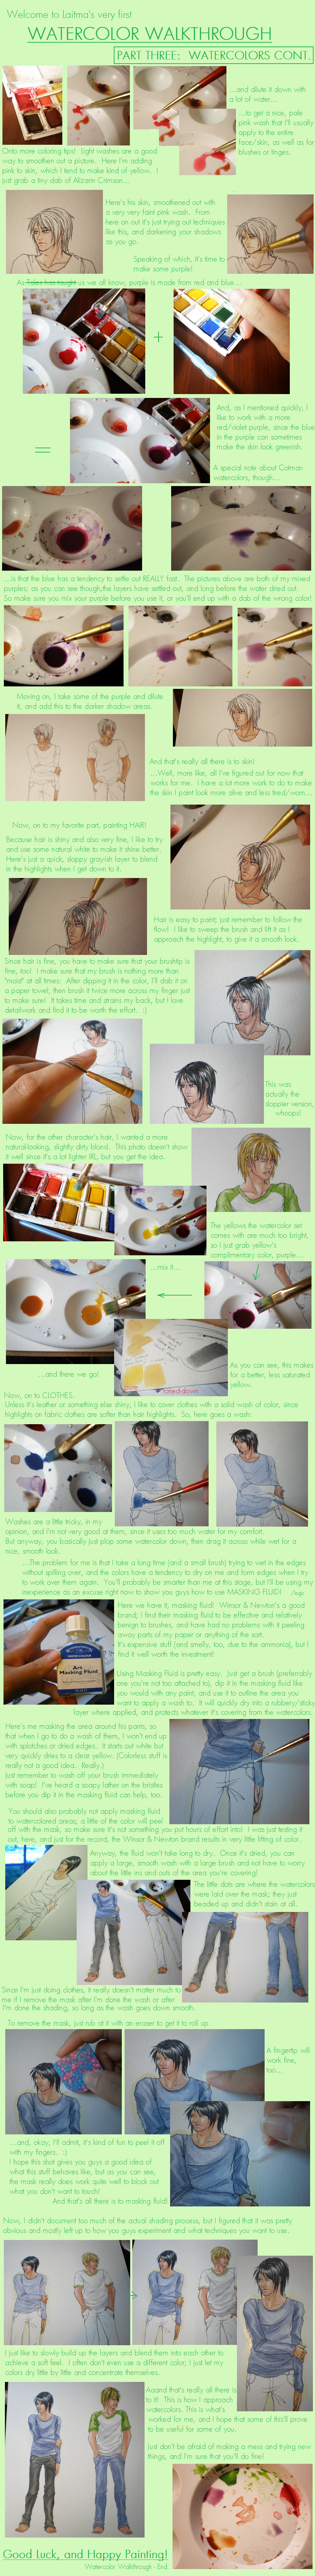 Watercolor Walkthrough Part 3 by Laitma